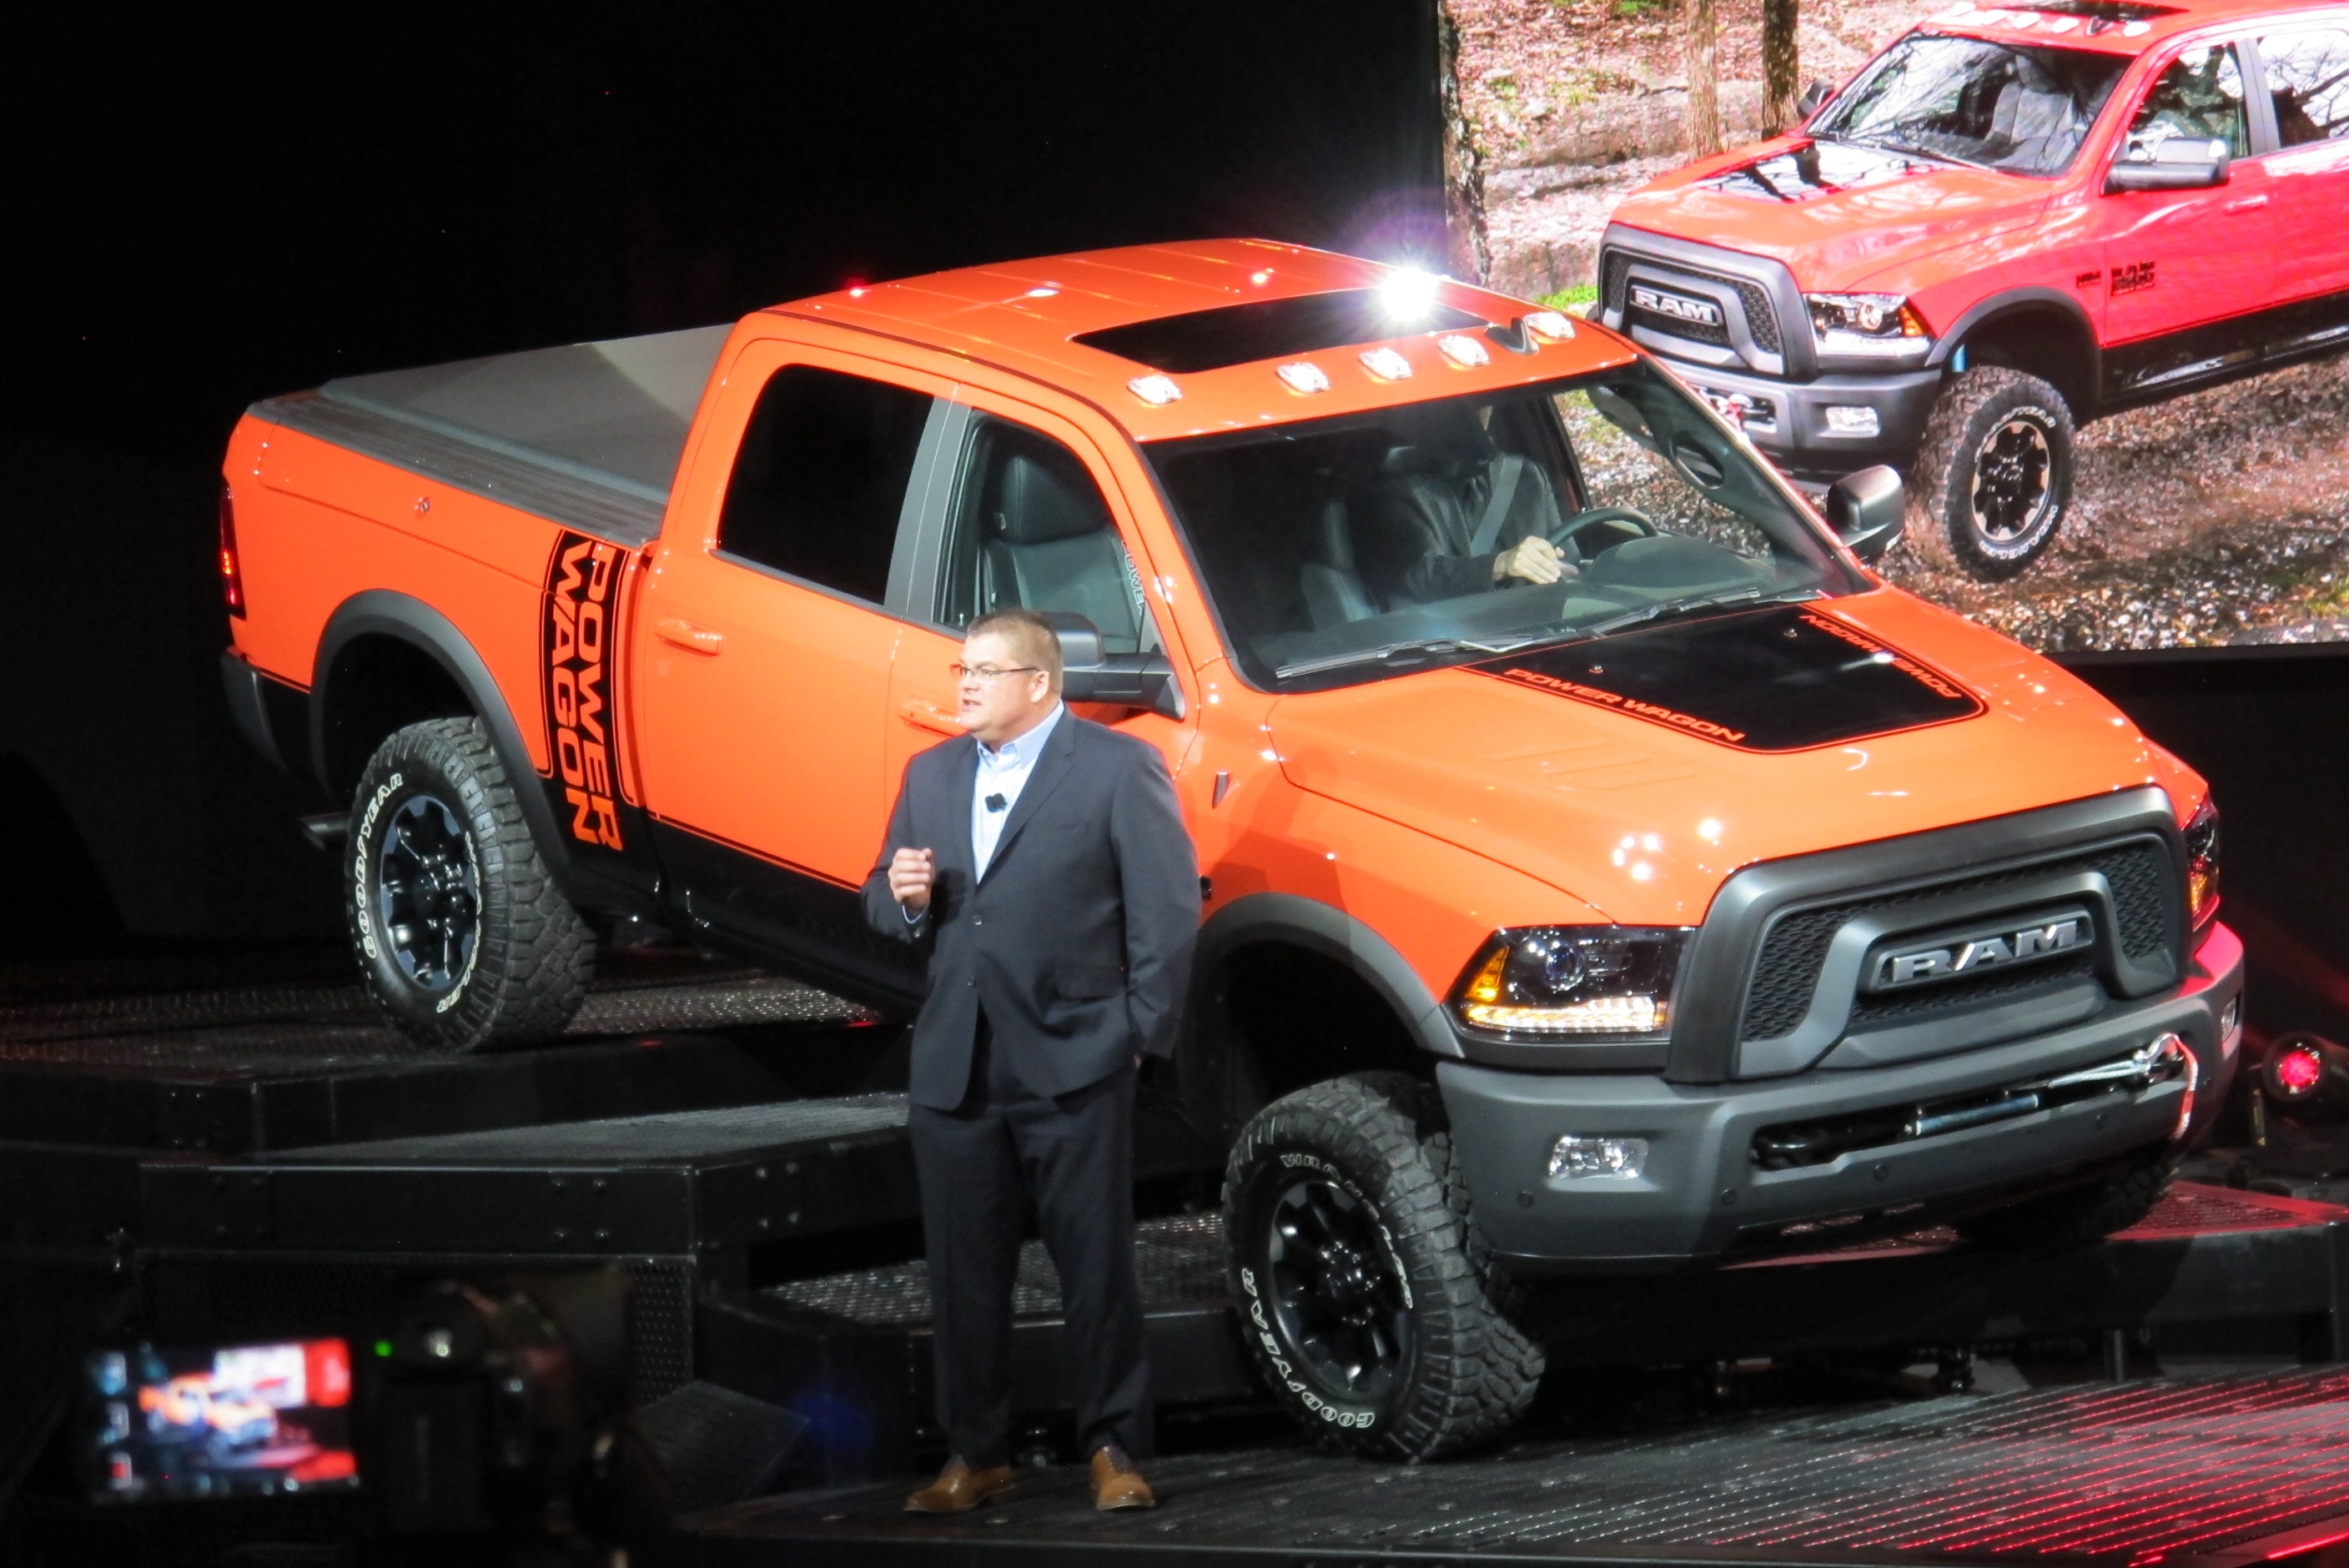 2017 Ram 1500 Srt Hellcat >> 2017 Ram Power Wagon gets a newer, tougher face